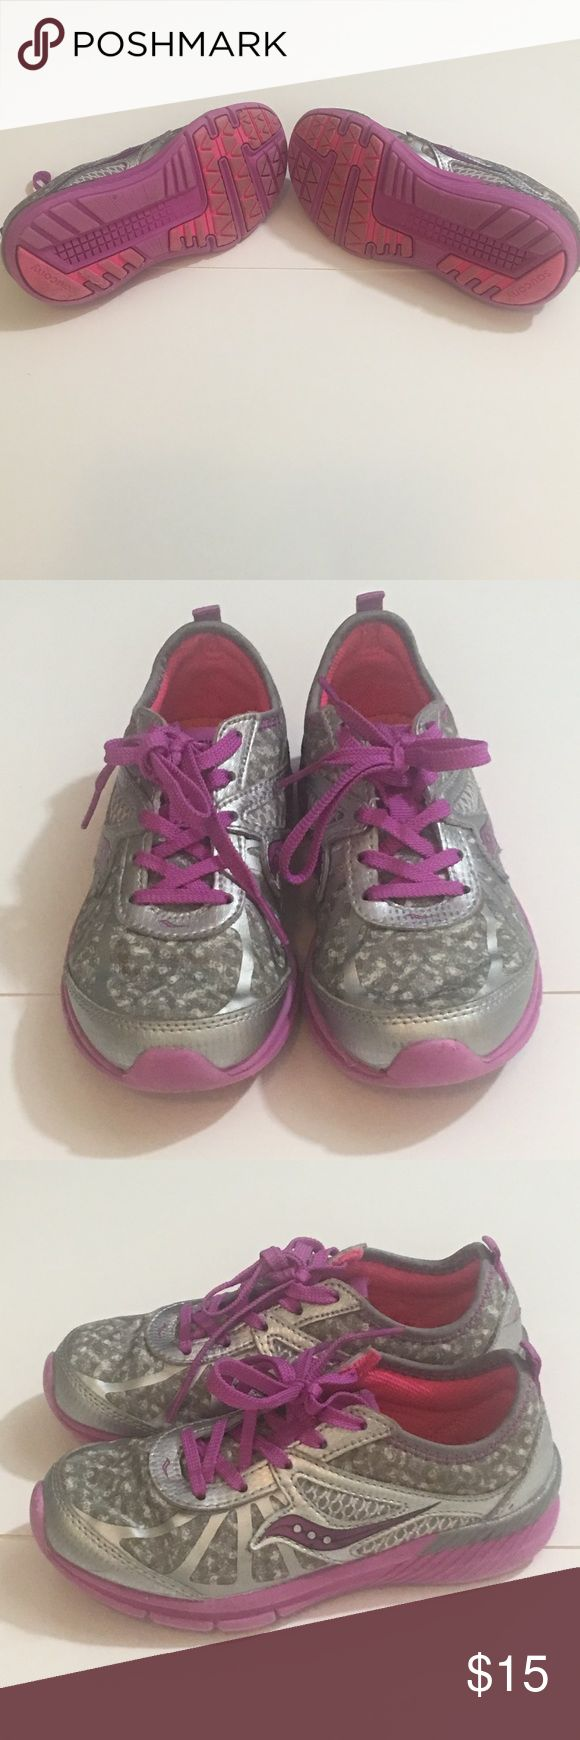 Saucony girls silver & purple tennis shoes Saucony girls silver & purple tennis shoes, size 12. In good used condition. Saucony Shoes Sneakers